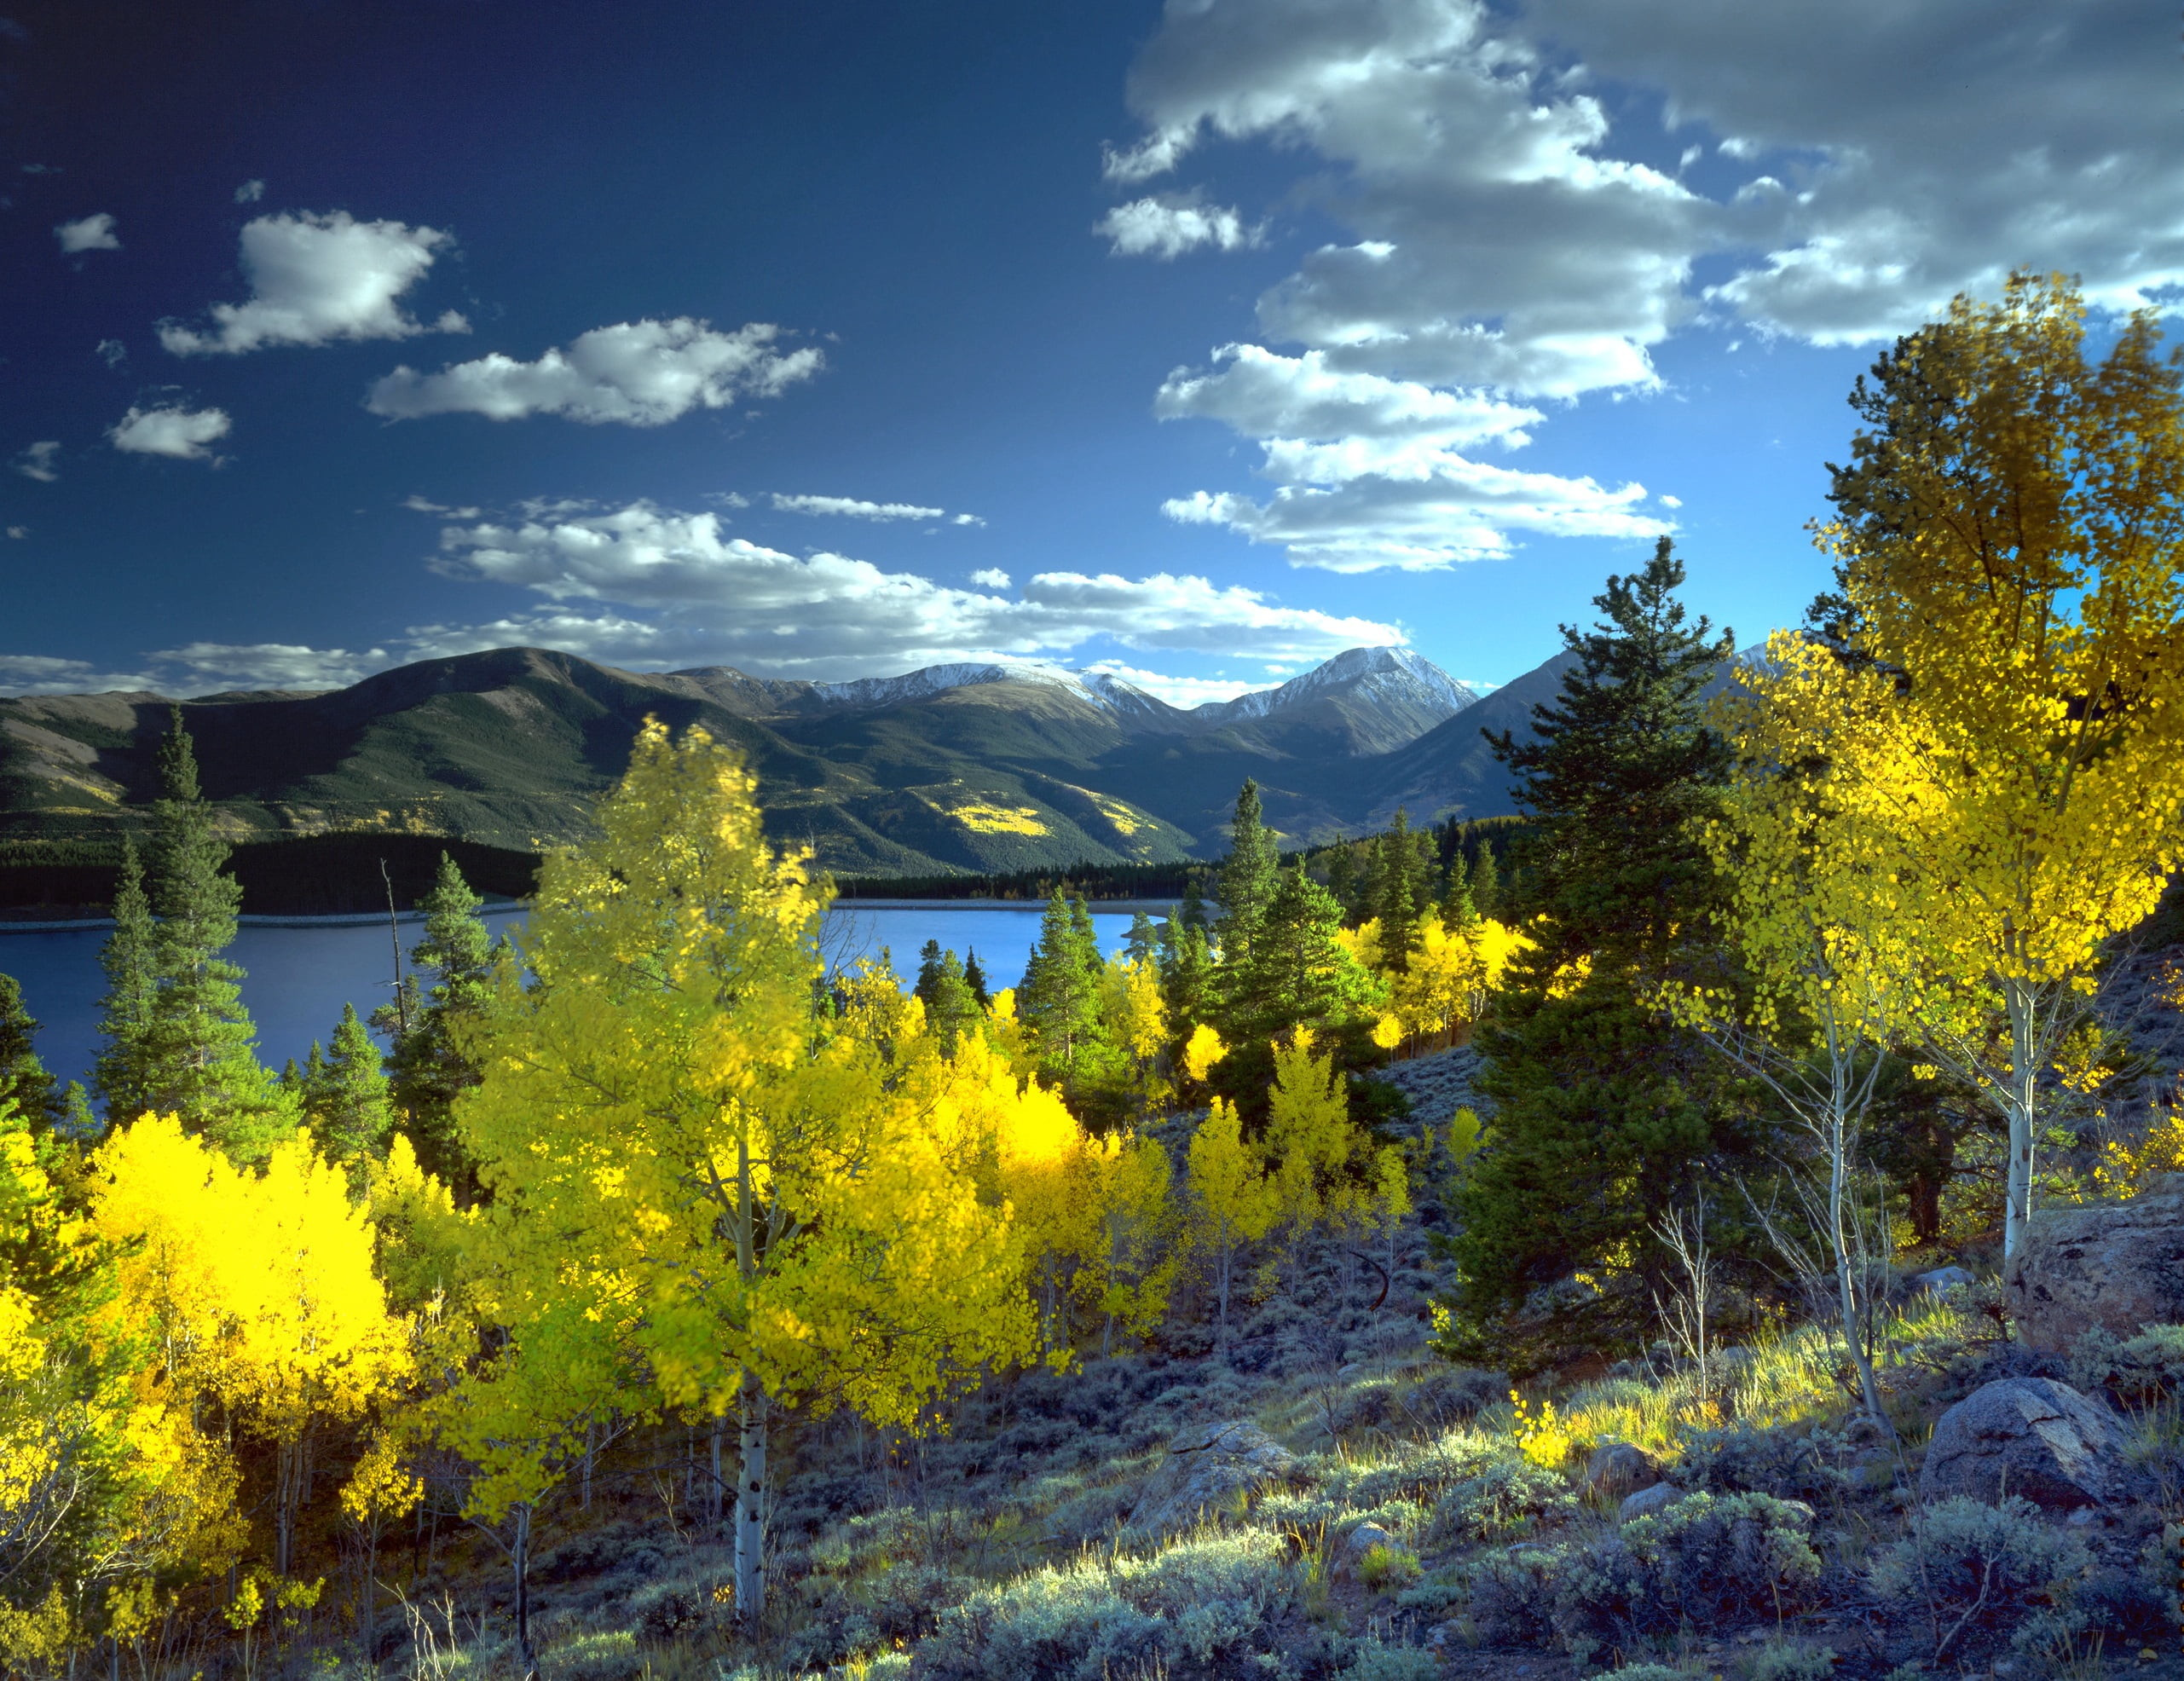 2562x1972 photography of yellow trees near body of water during daytime HD wallpaper